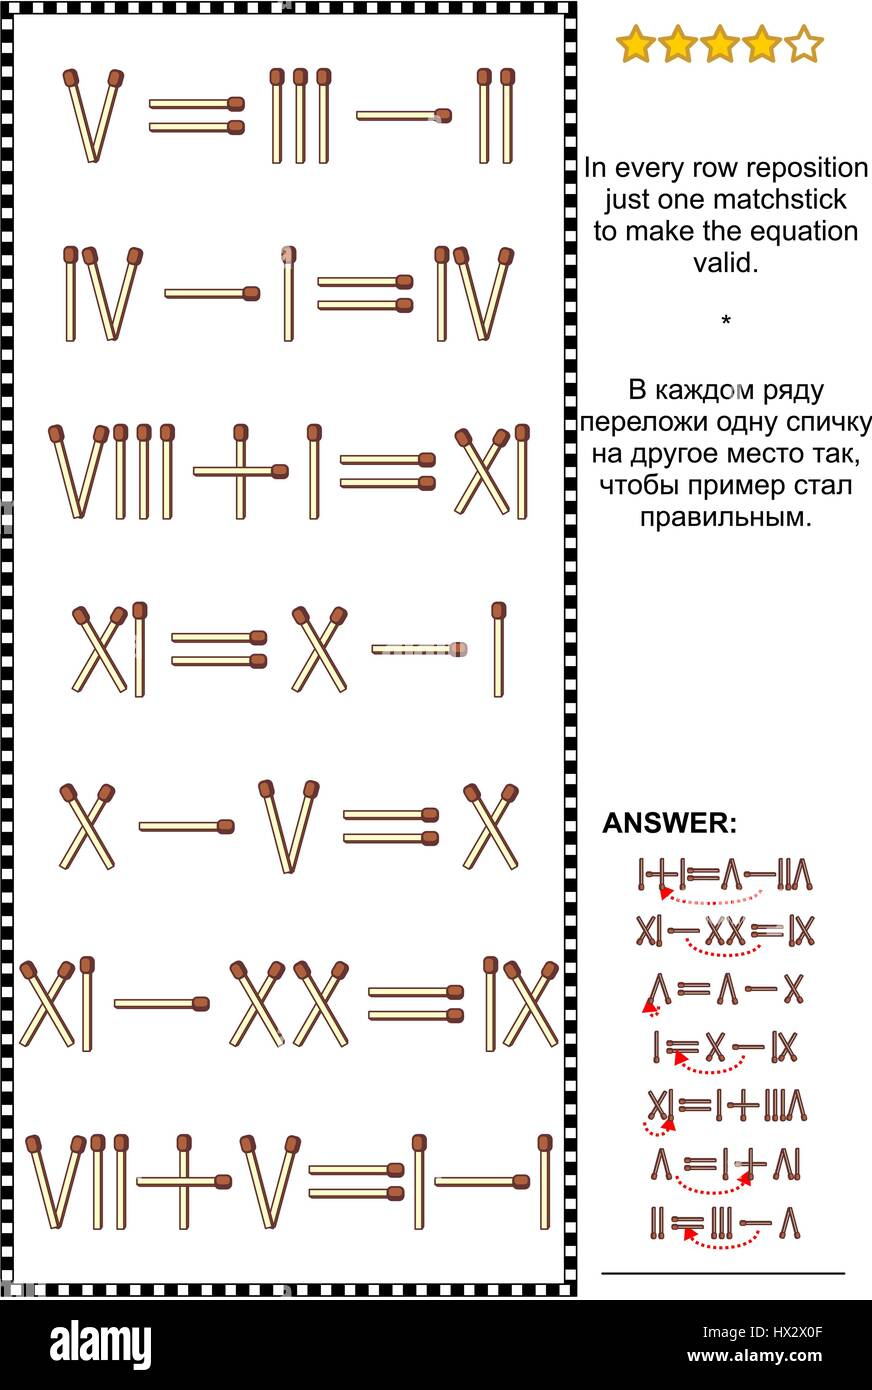 Visual math puzzle with roman numerals: In every row reposition just one matchstick to make the equation valid. - Stock Image